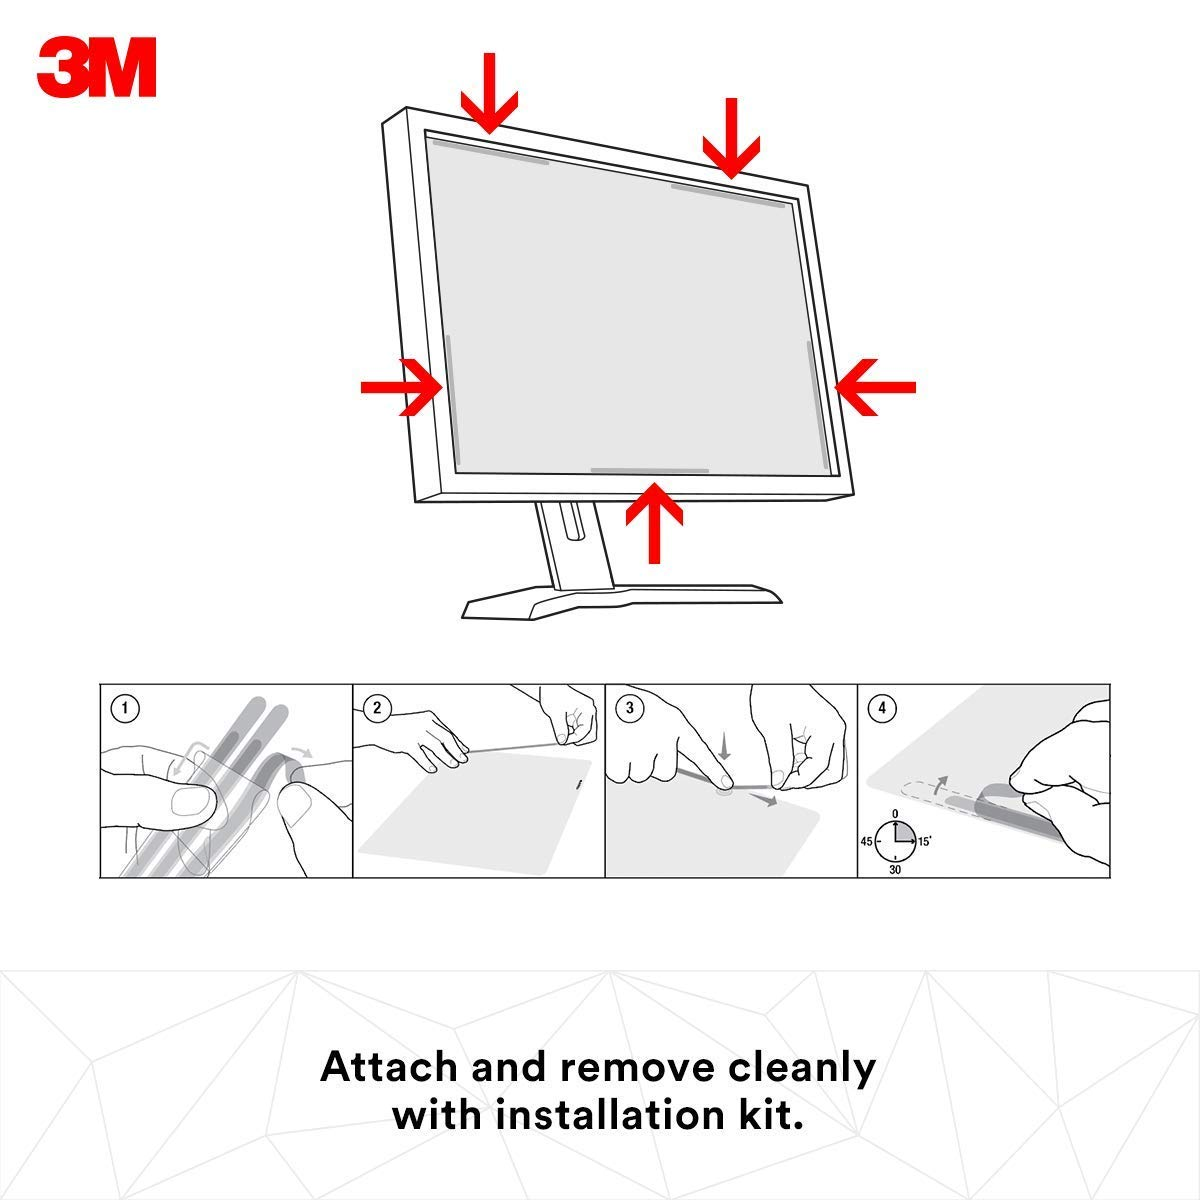 5:4 3M Privacy Filter for 17 Standard Monitor PF170C4B Renewed